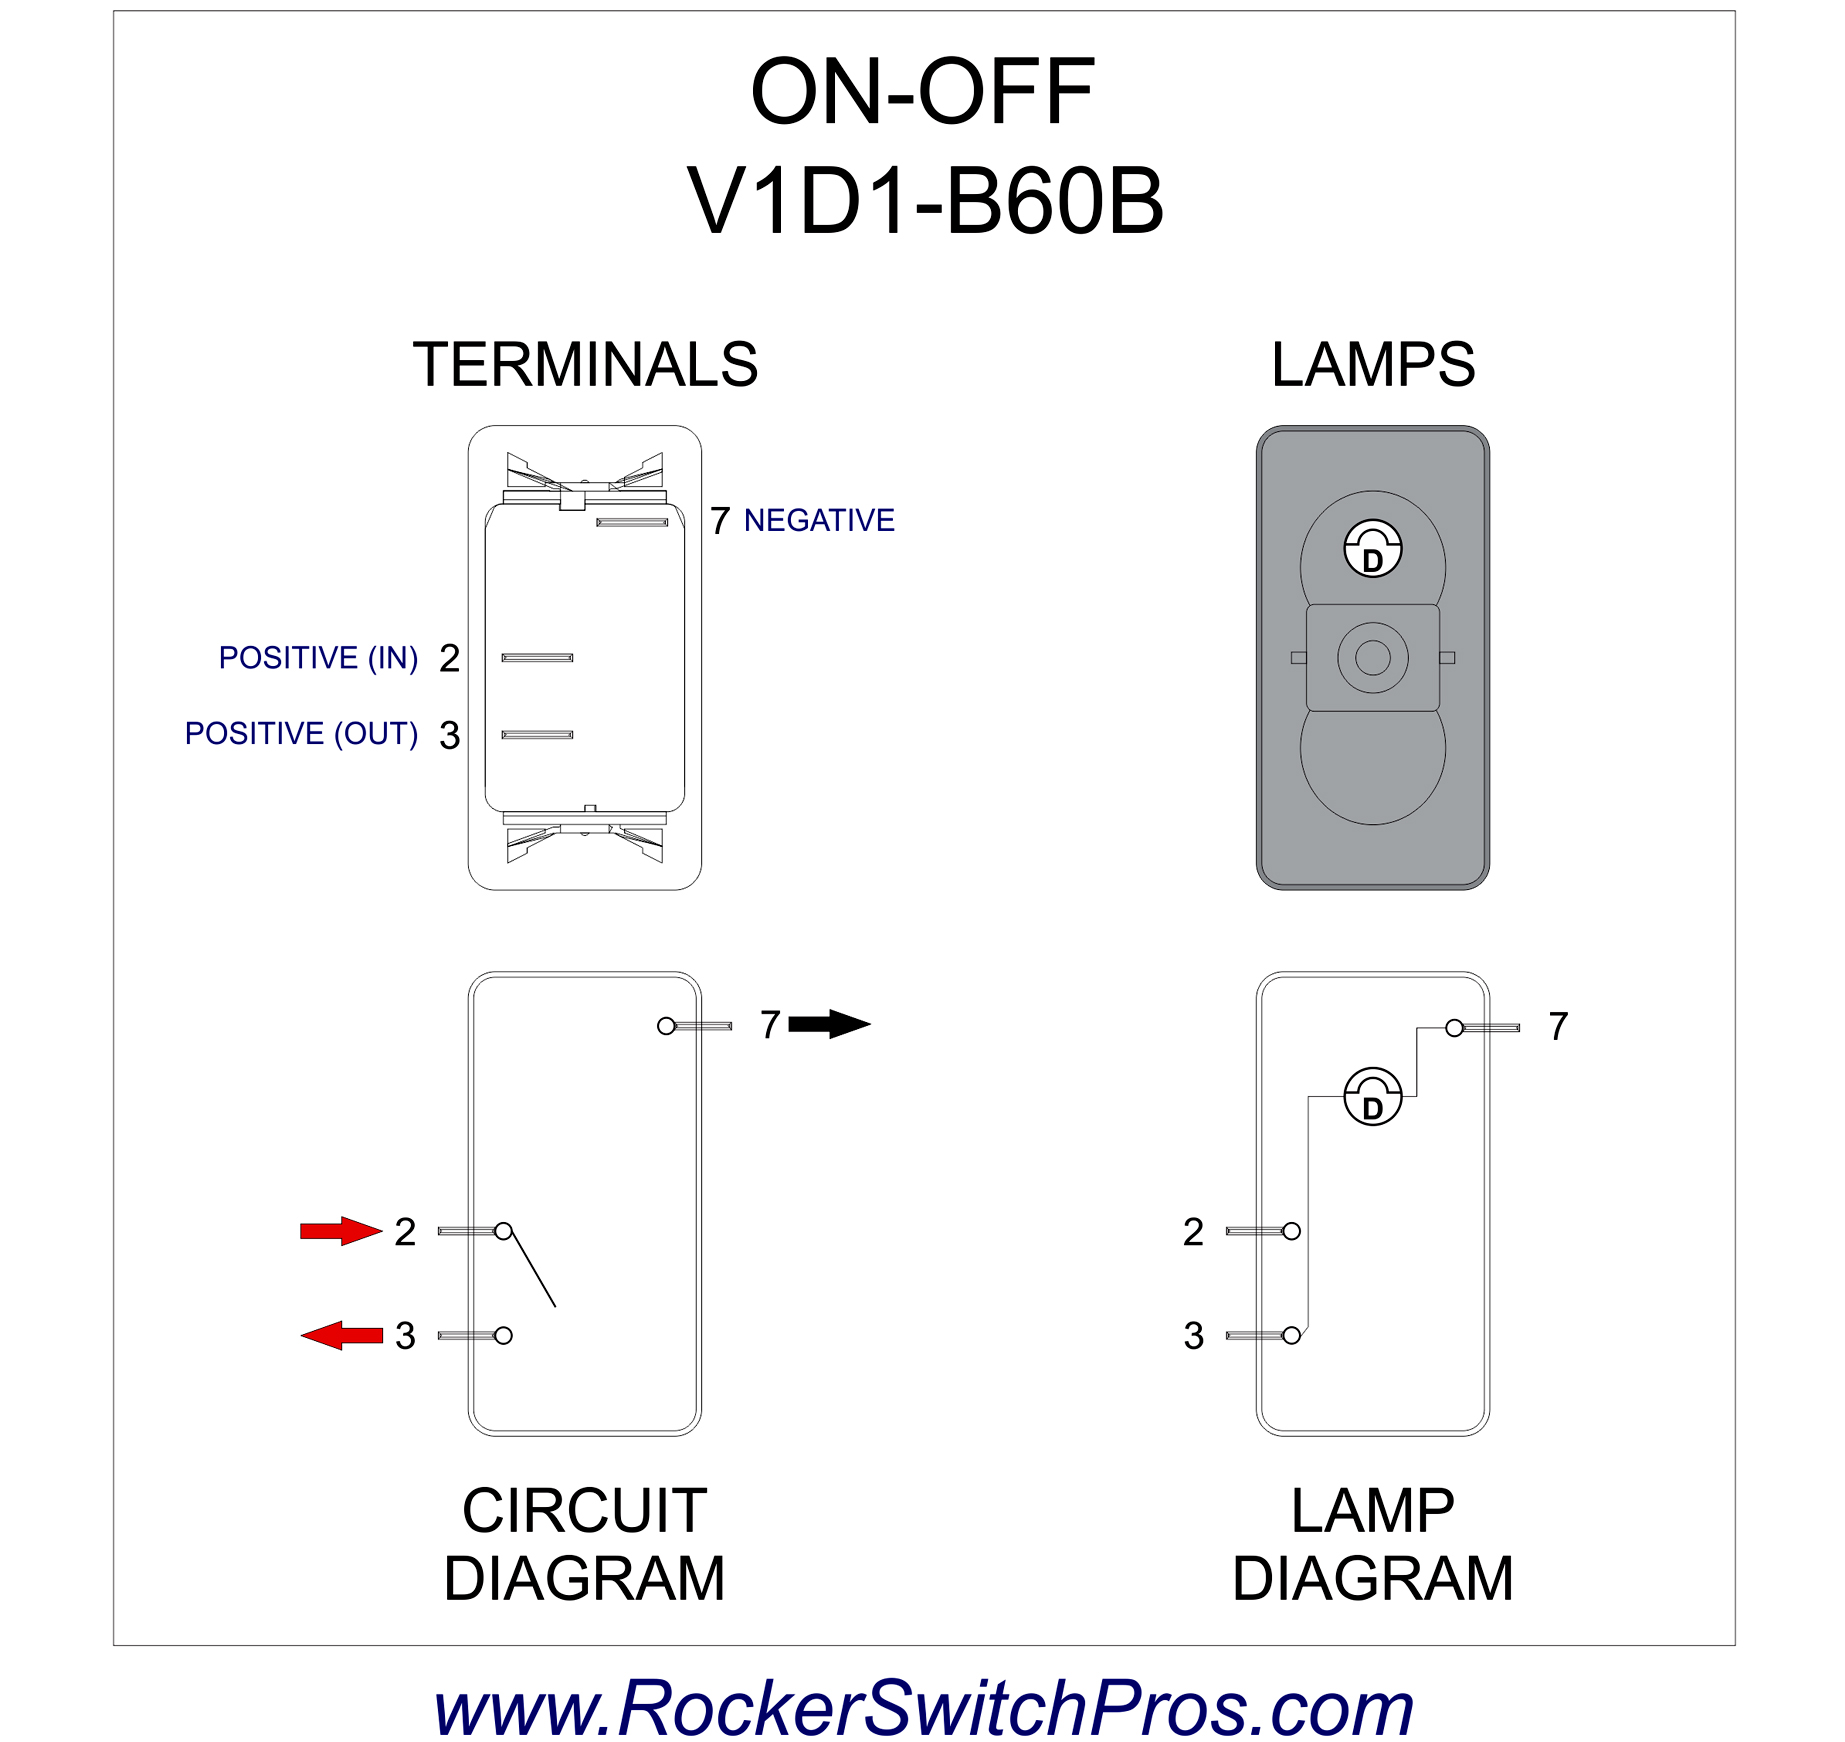 illuminated rocker switch wiring diagram 2007 dodge 3500 on off spst 1 dep light v1d1